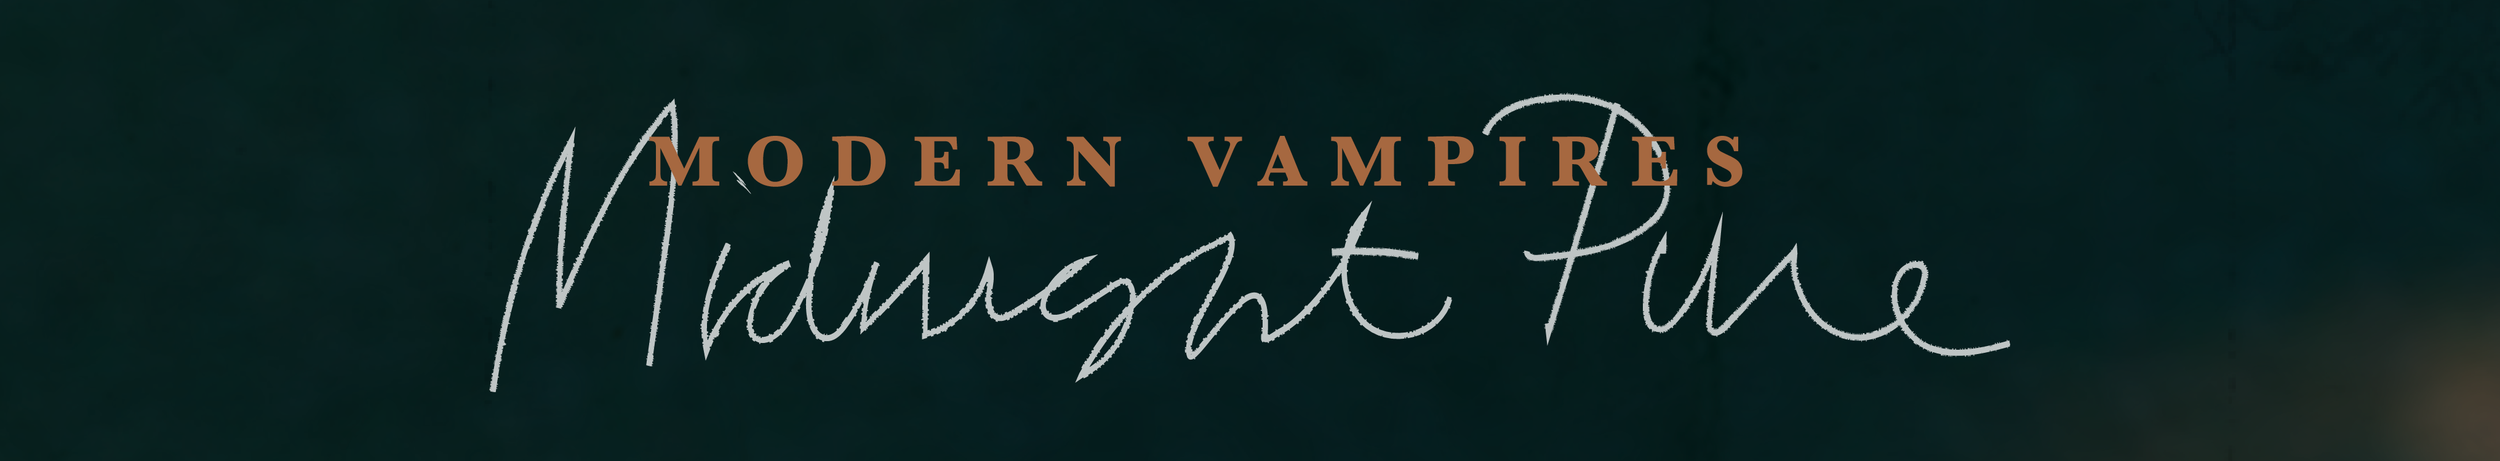 Modern Vampires - Midnight Pine_Bandcamp_Banner_LC.png